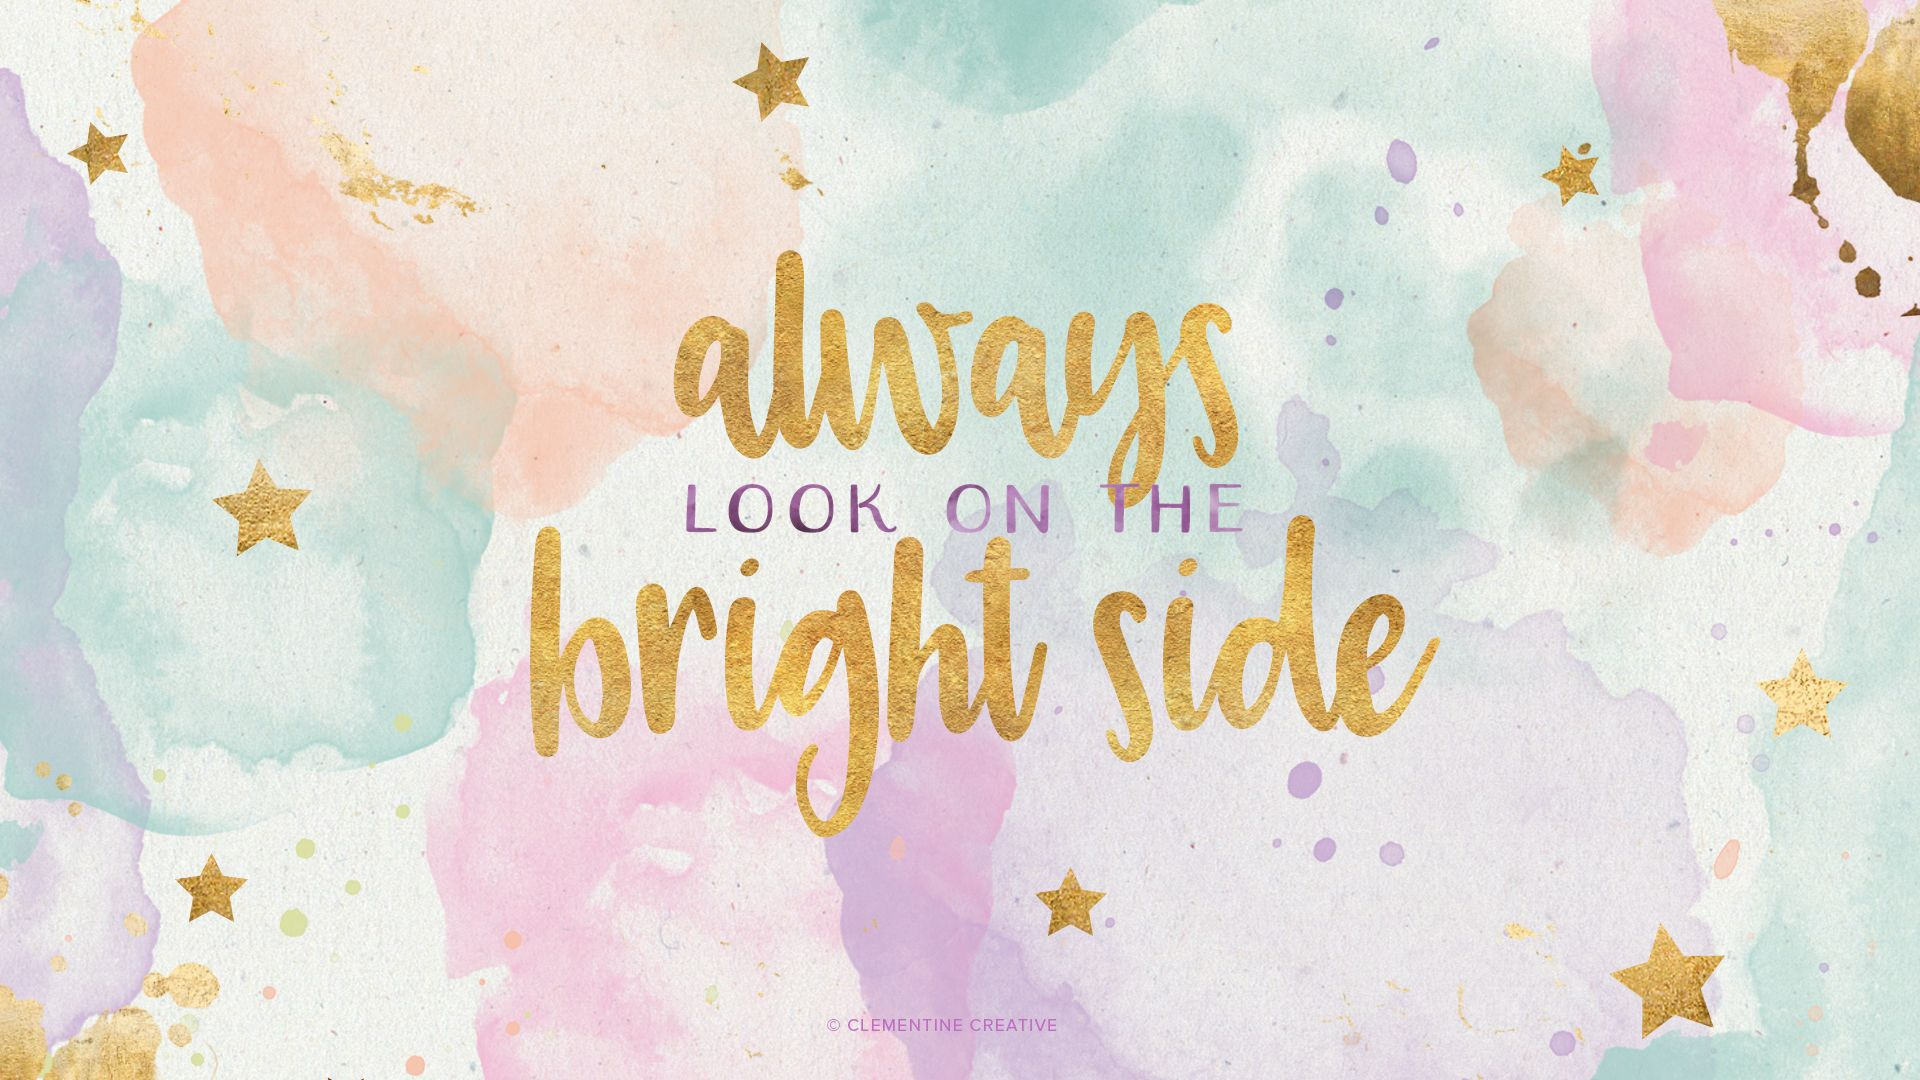 Wallpaper Always Look On The Bright Side Wallpaper Quotes Cute